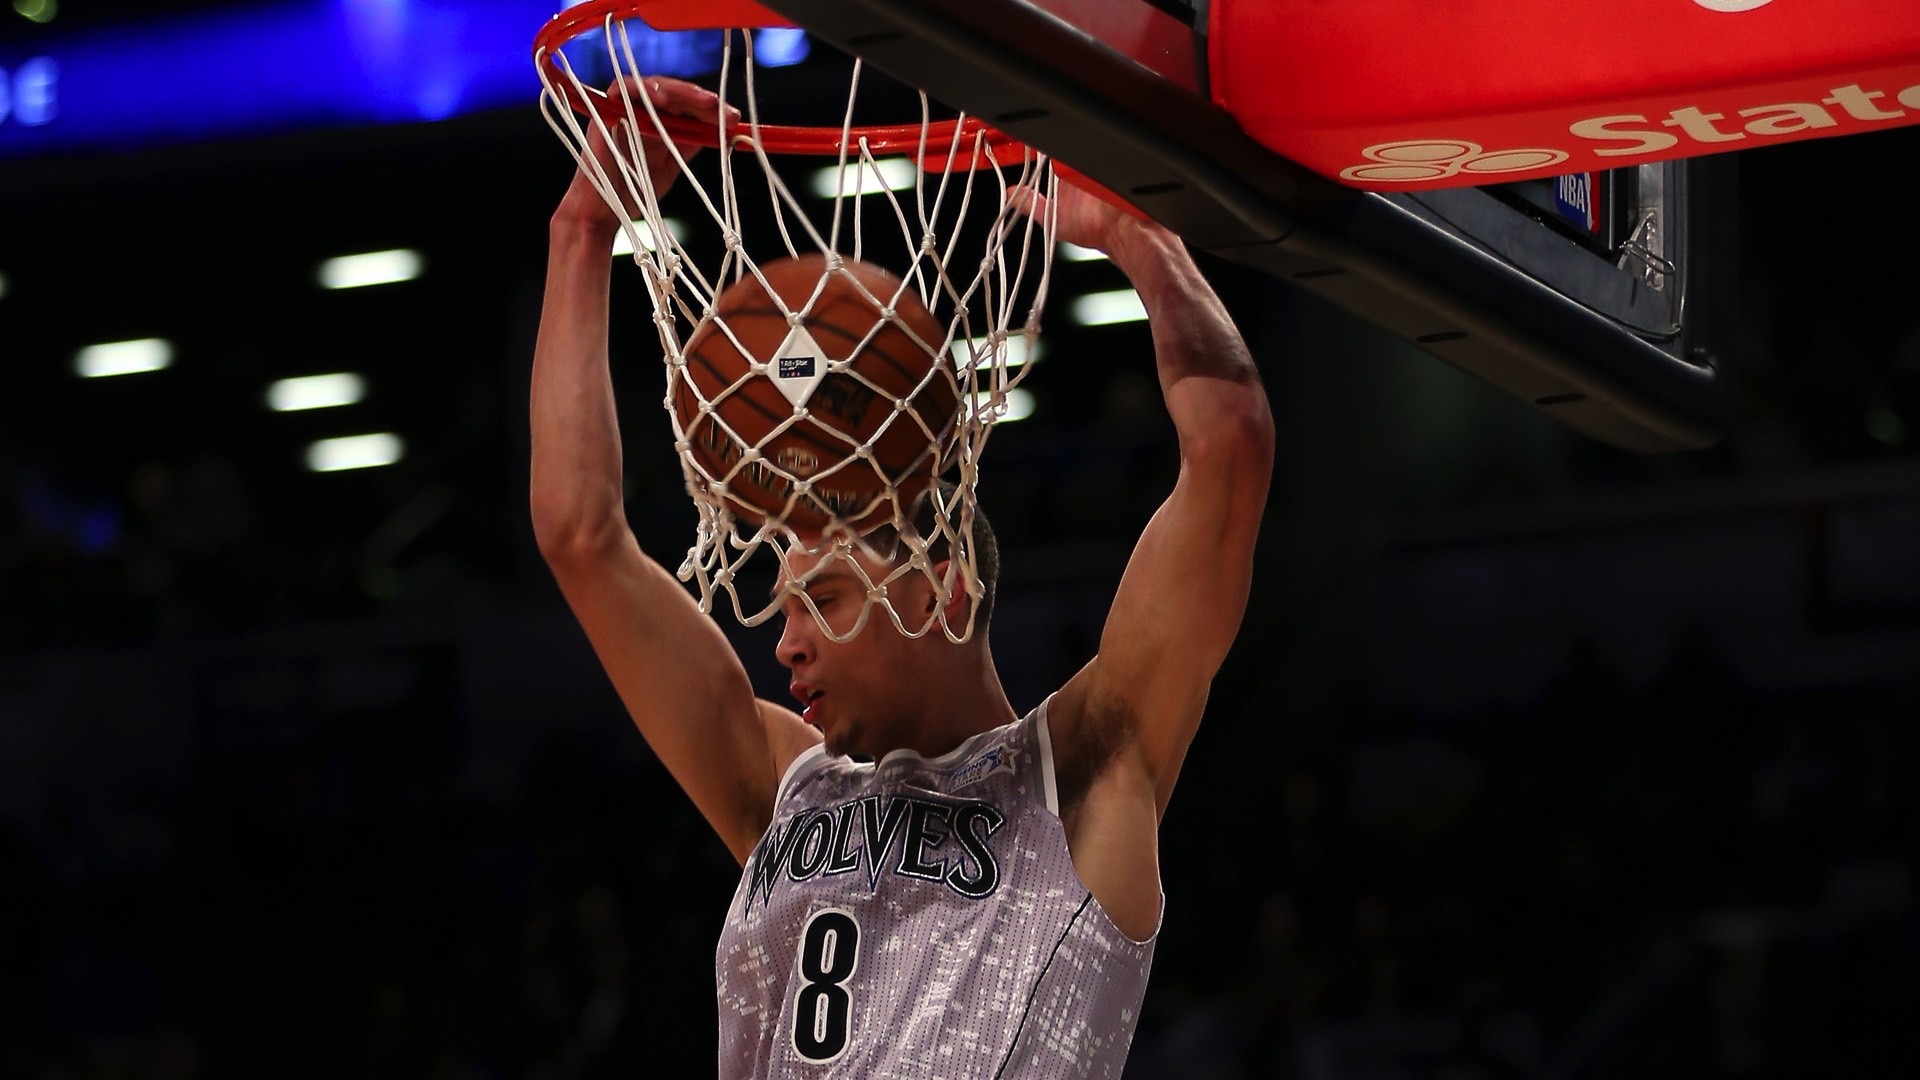 zach-lavine-021415-FTR-GETTY.jpeg